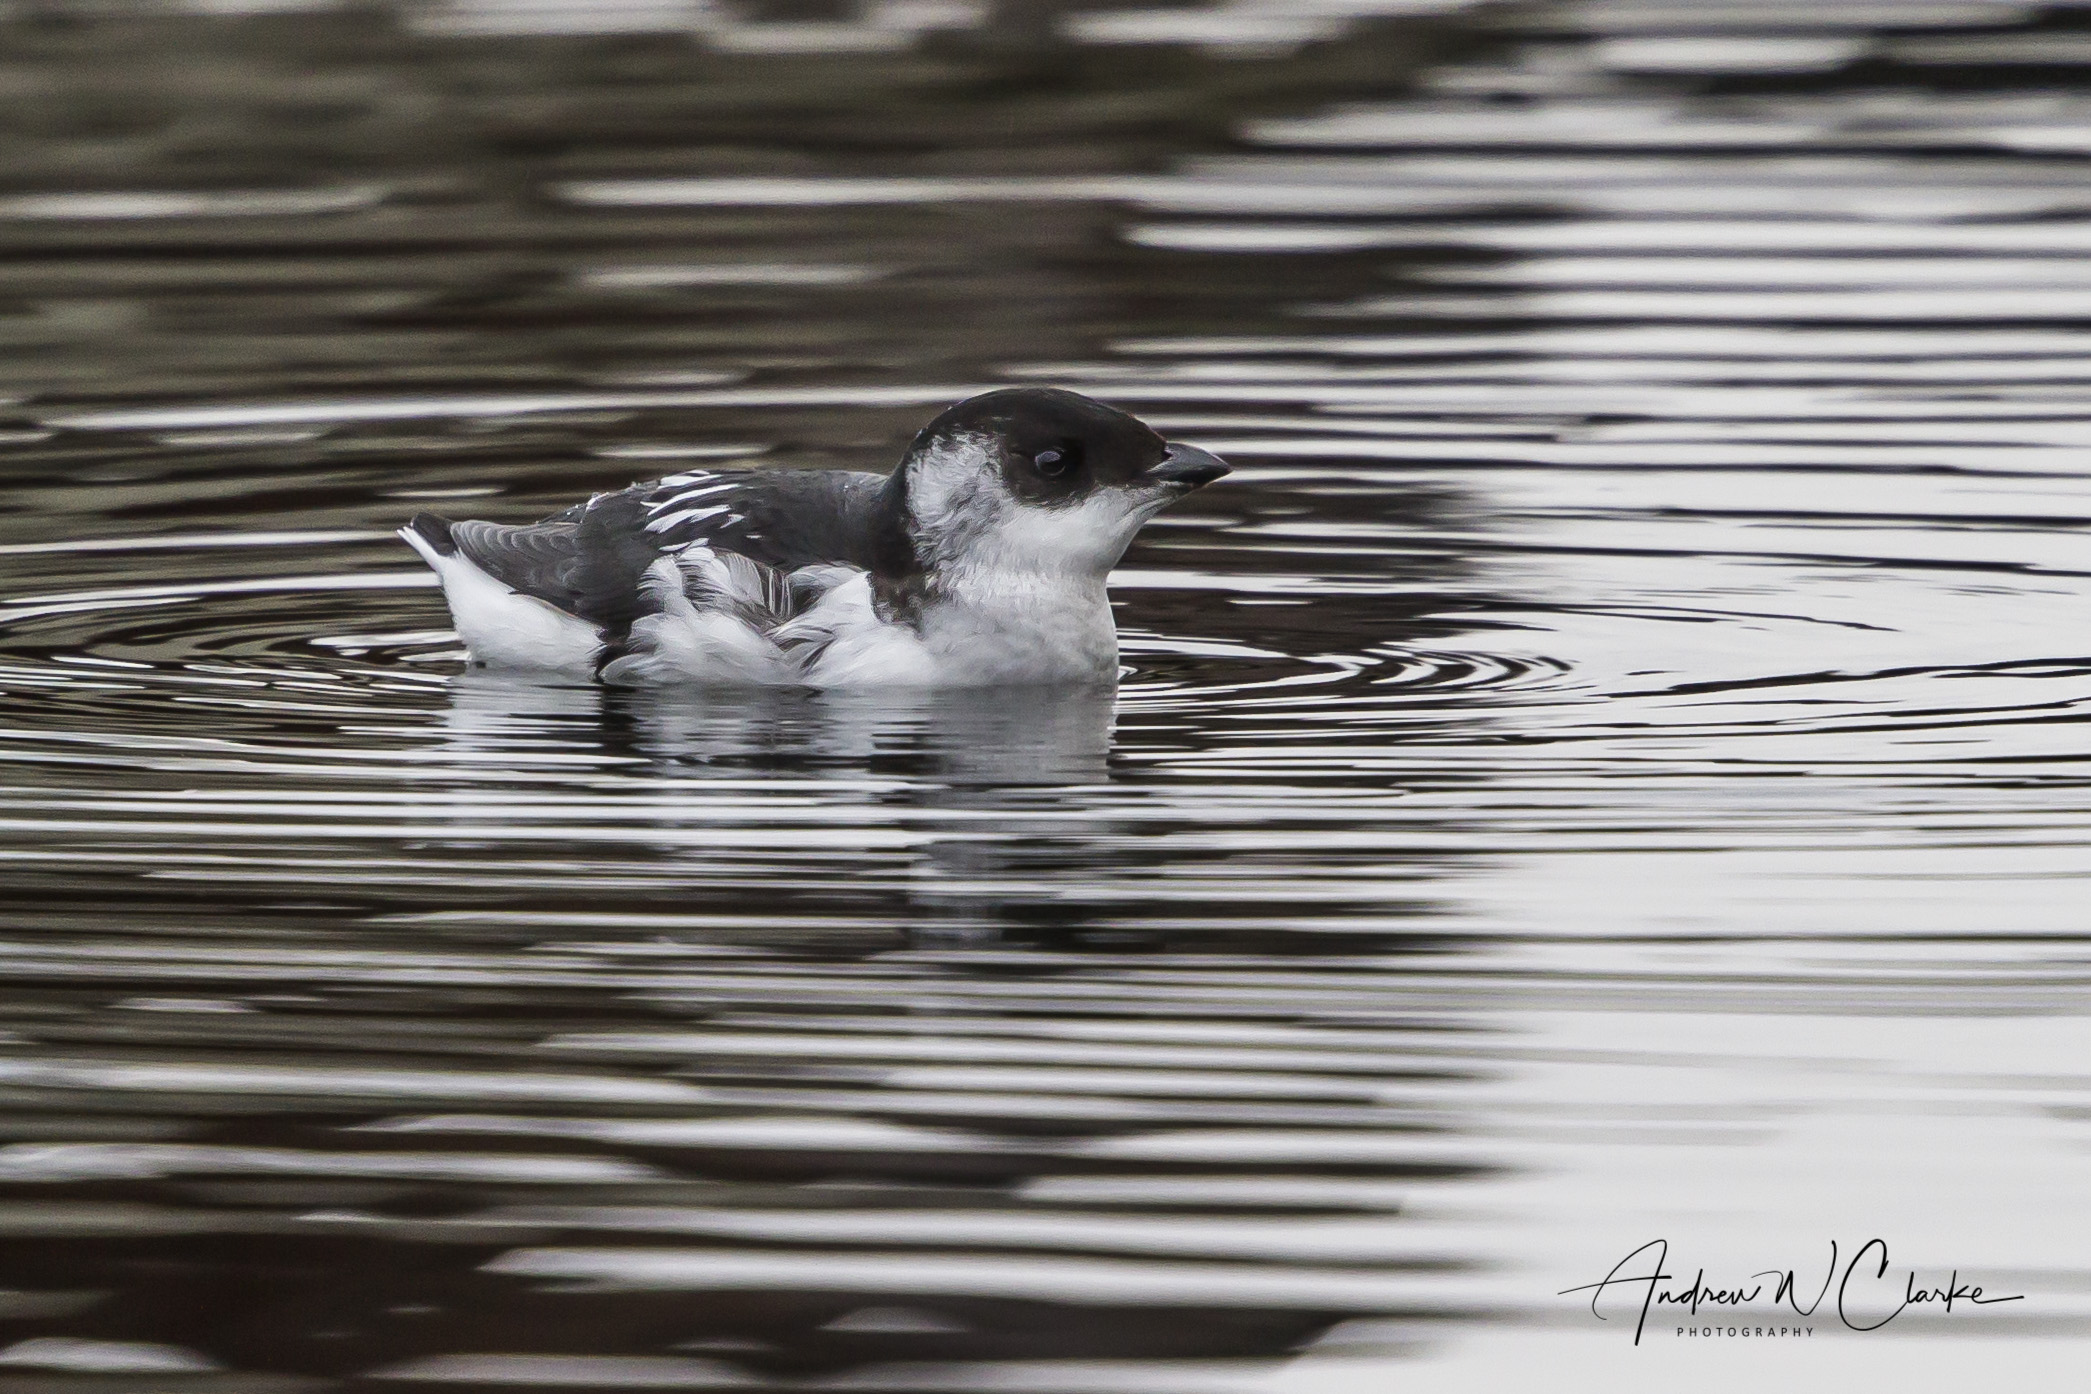 Little Auk / Alkekonge